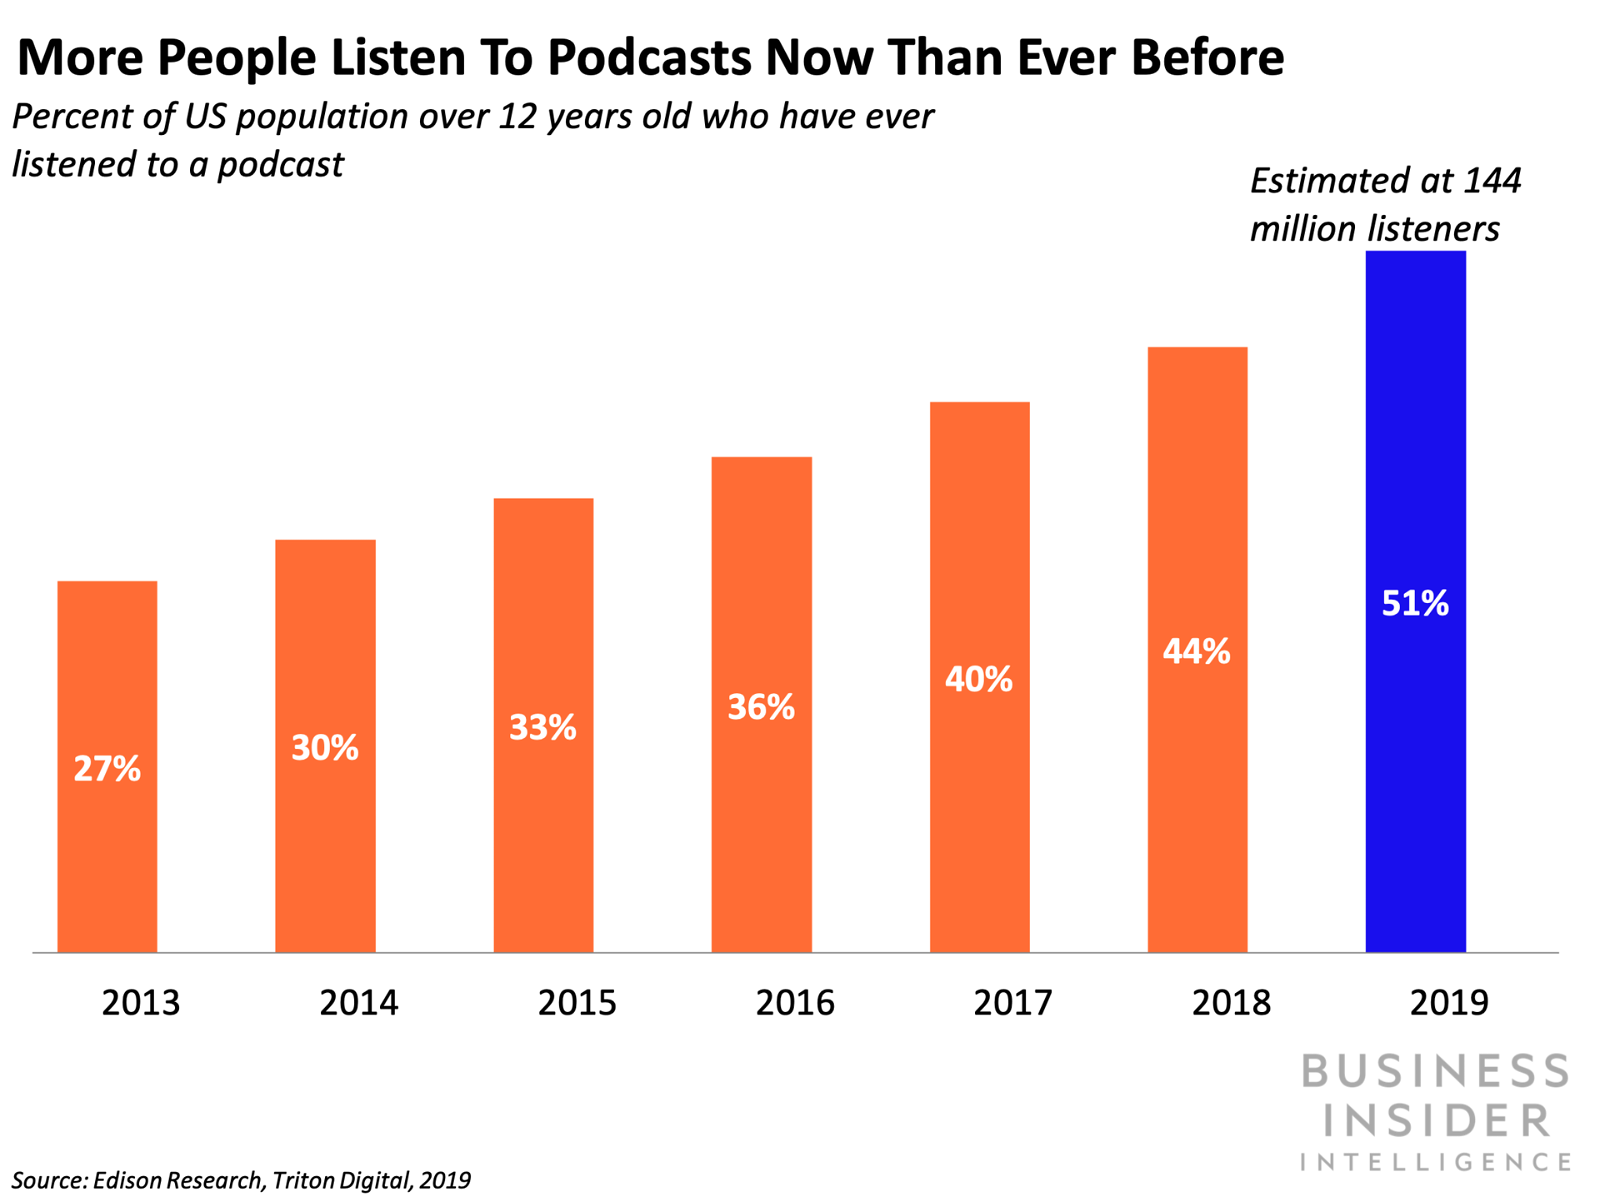 YouTube is positioned to become the next podcasting giant